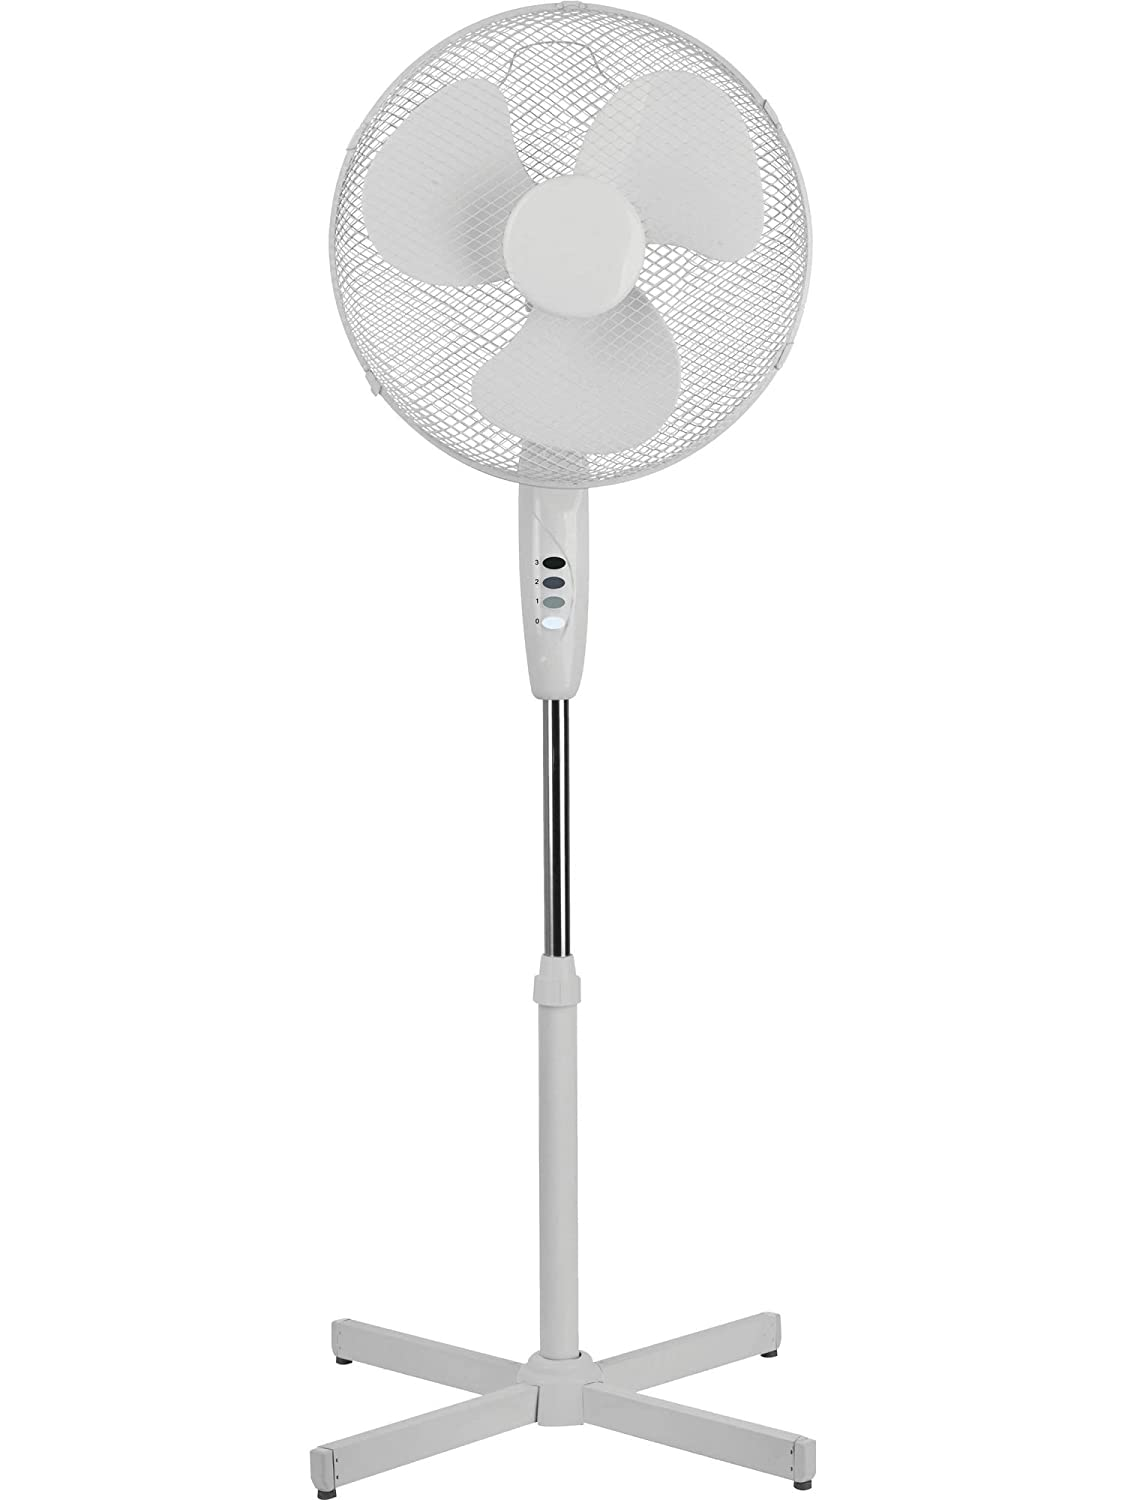 16 3-Speed Oscillating Low Noise Pedestal / Stand Fan - Ideal for Home & Office Texet